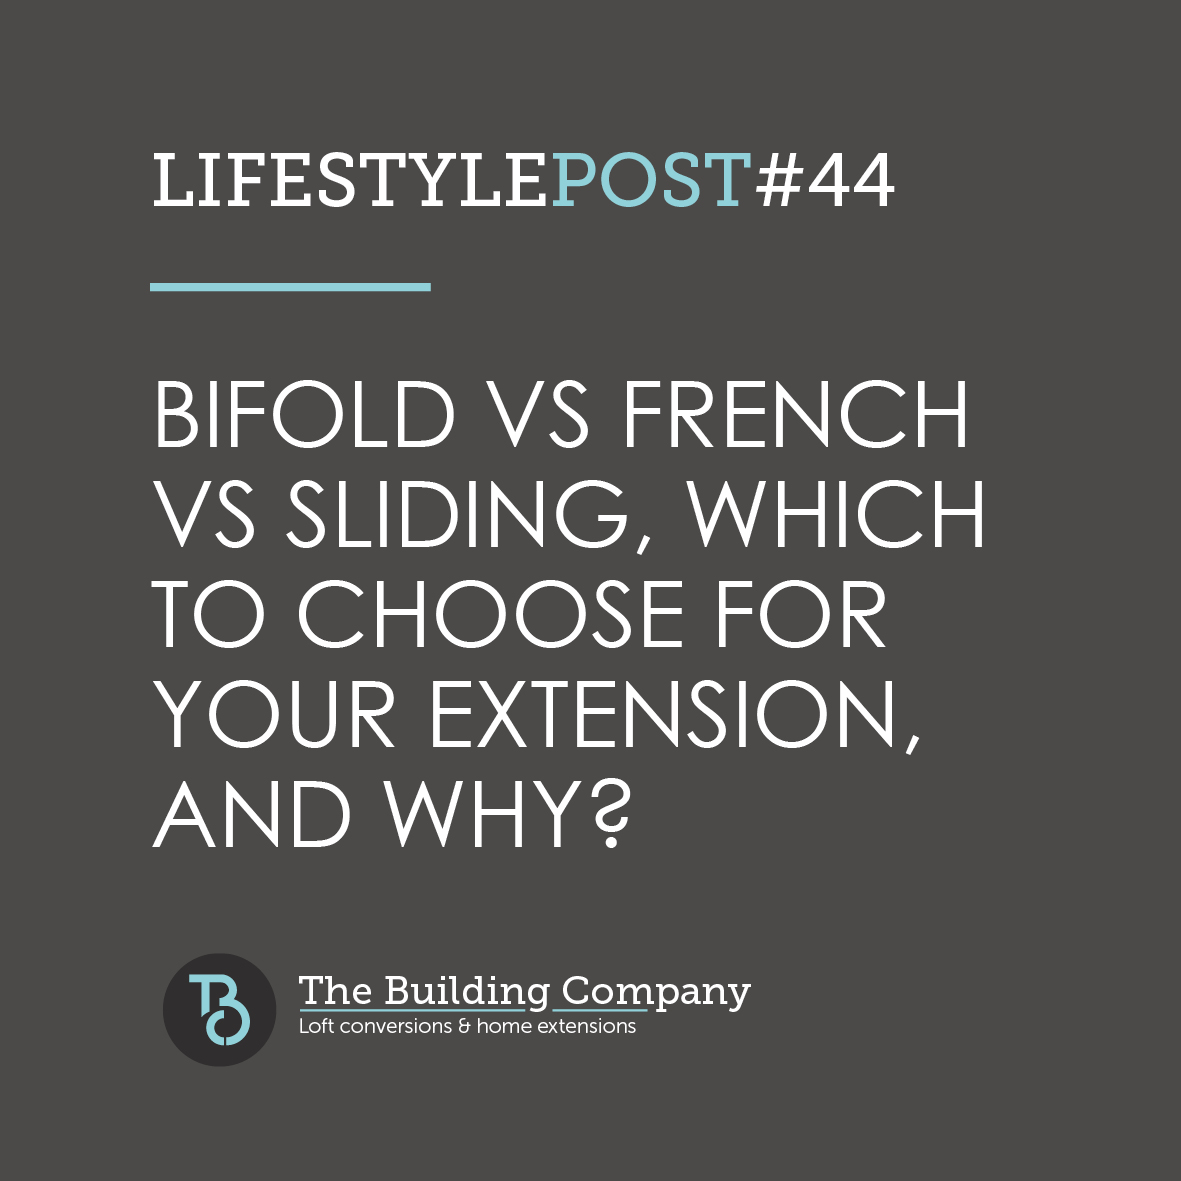 Bi-fold vs French vs sliding – which to choose for your extension, and why?